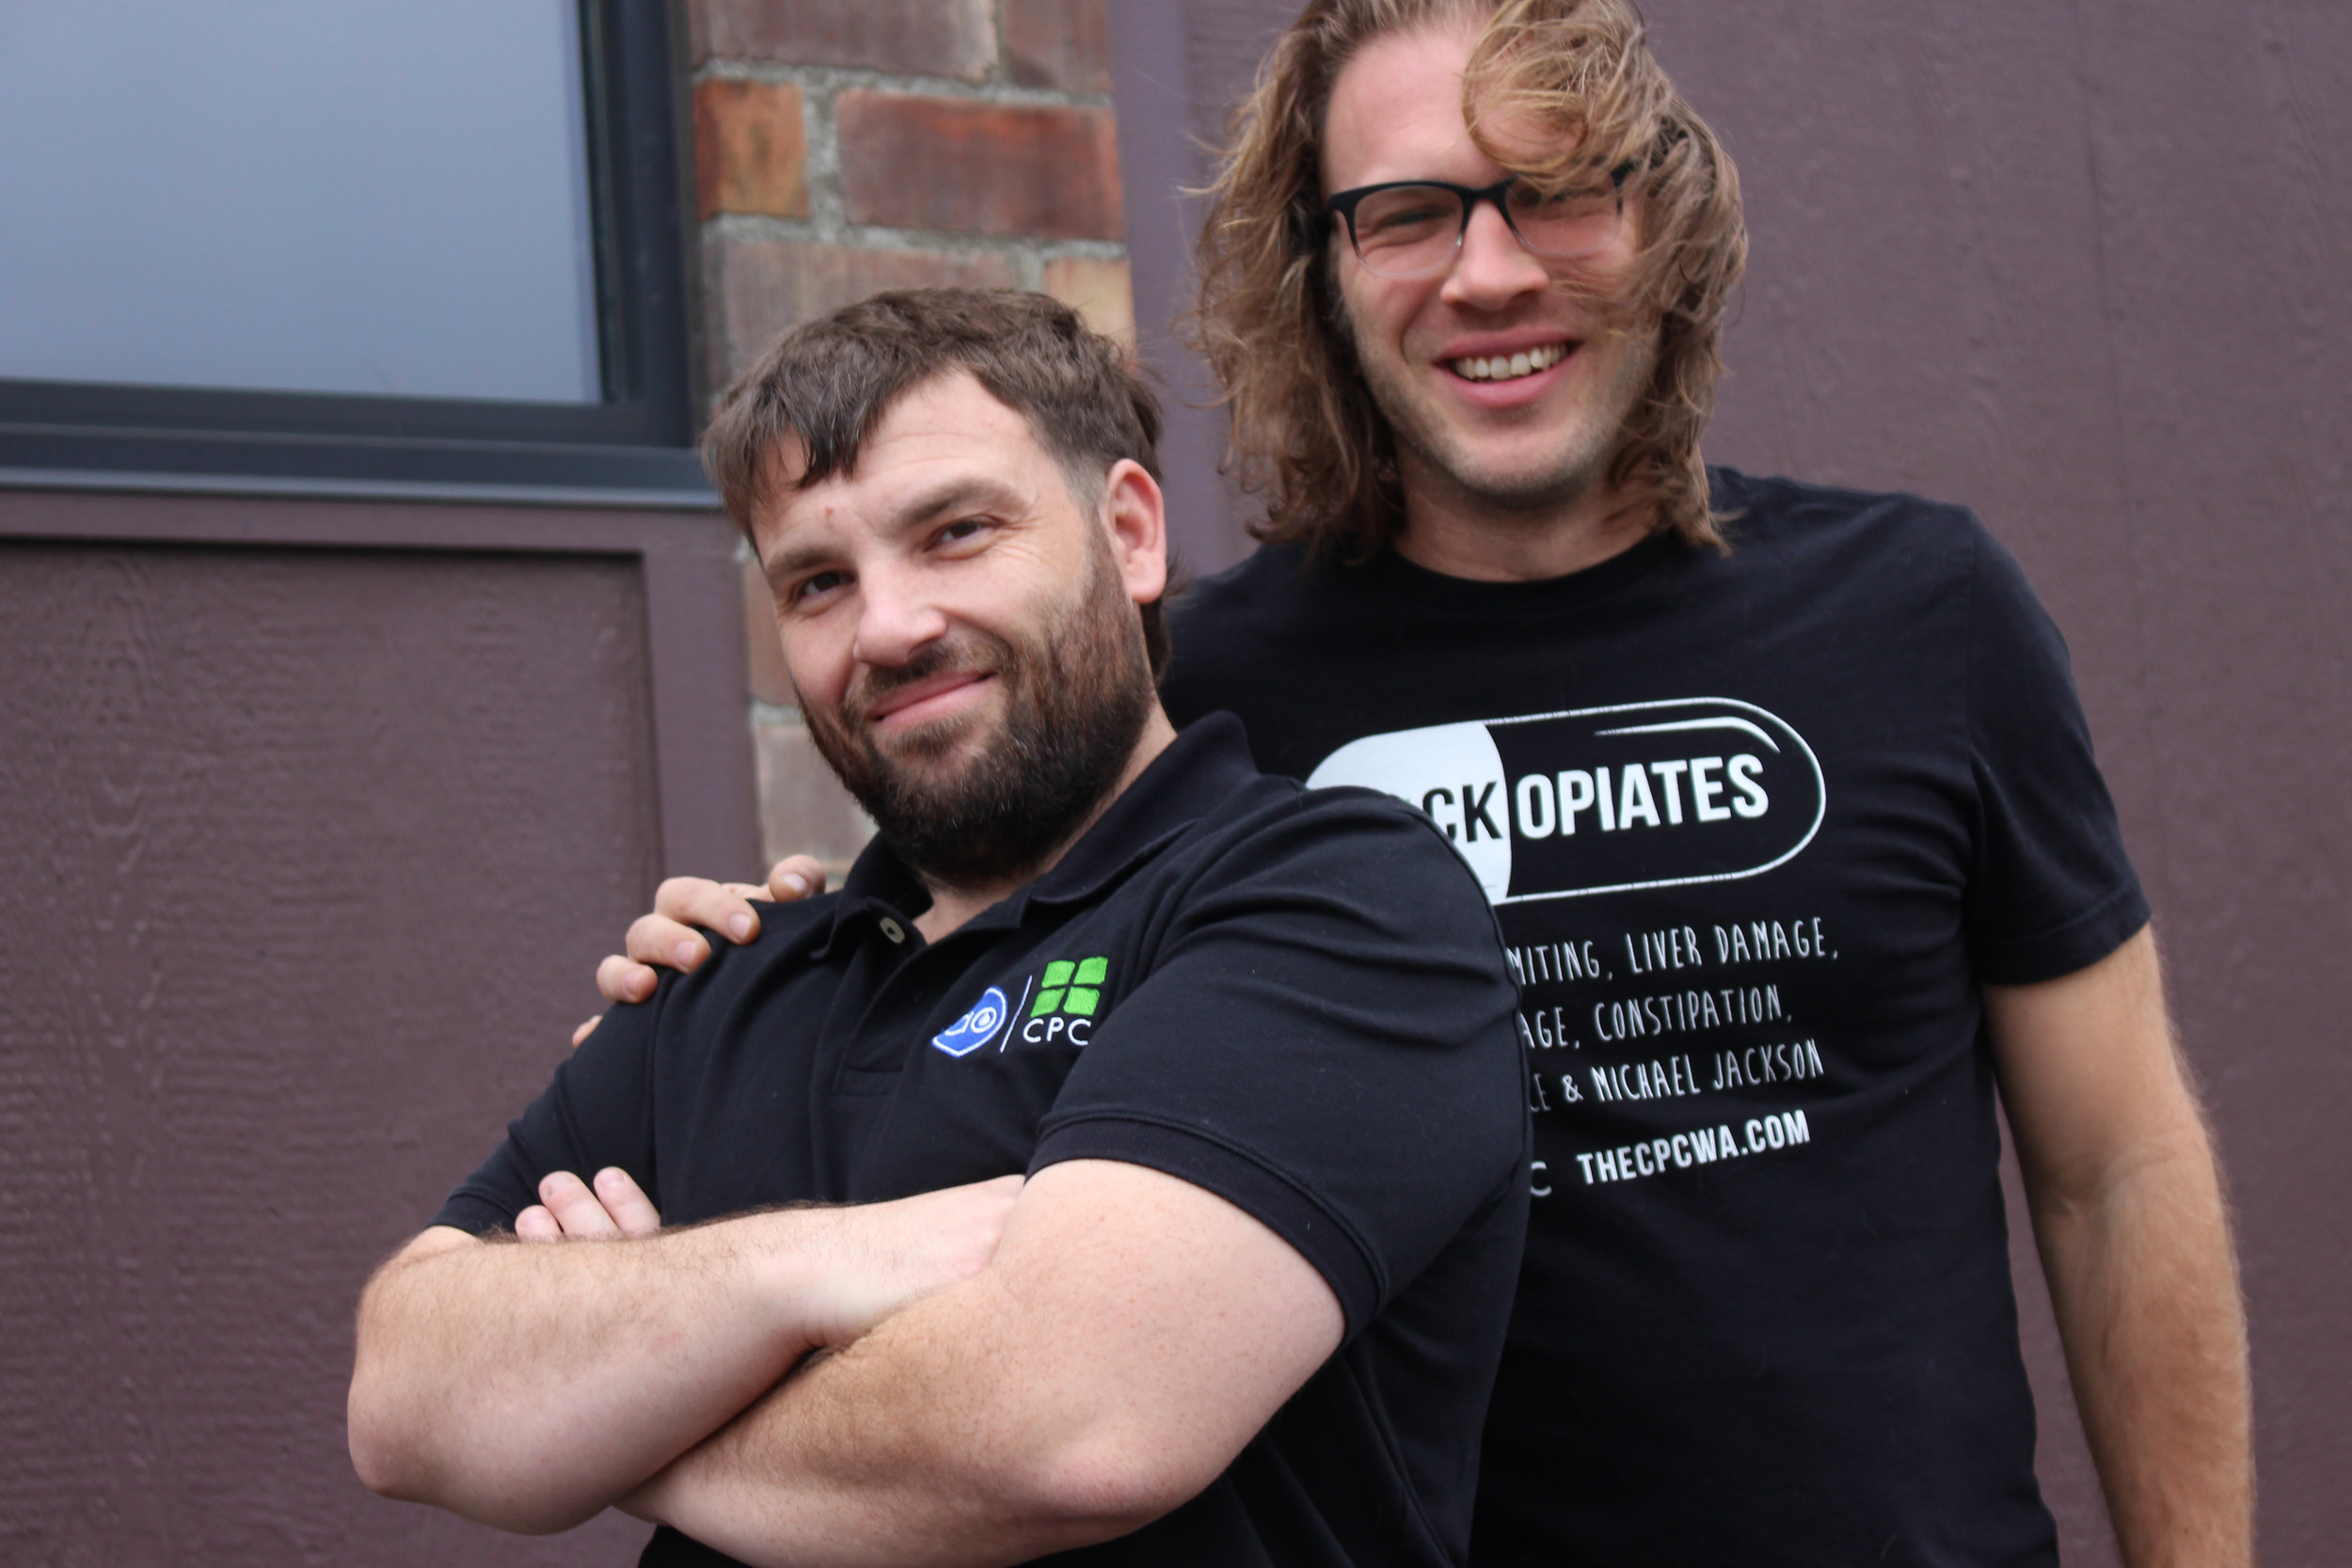 Ben (left) & Jeremy (Right) from The Center for Palliative Care (CPC)